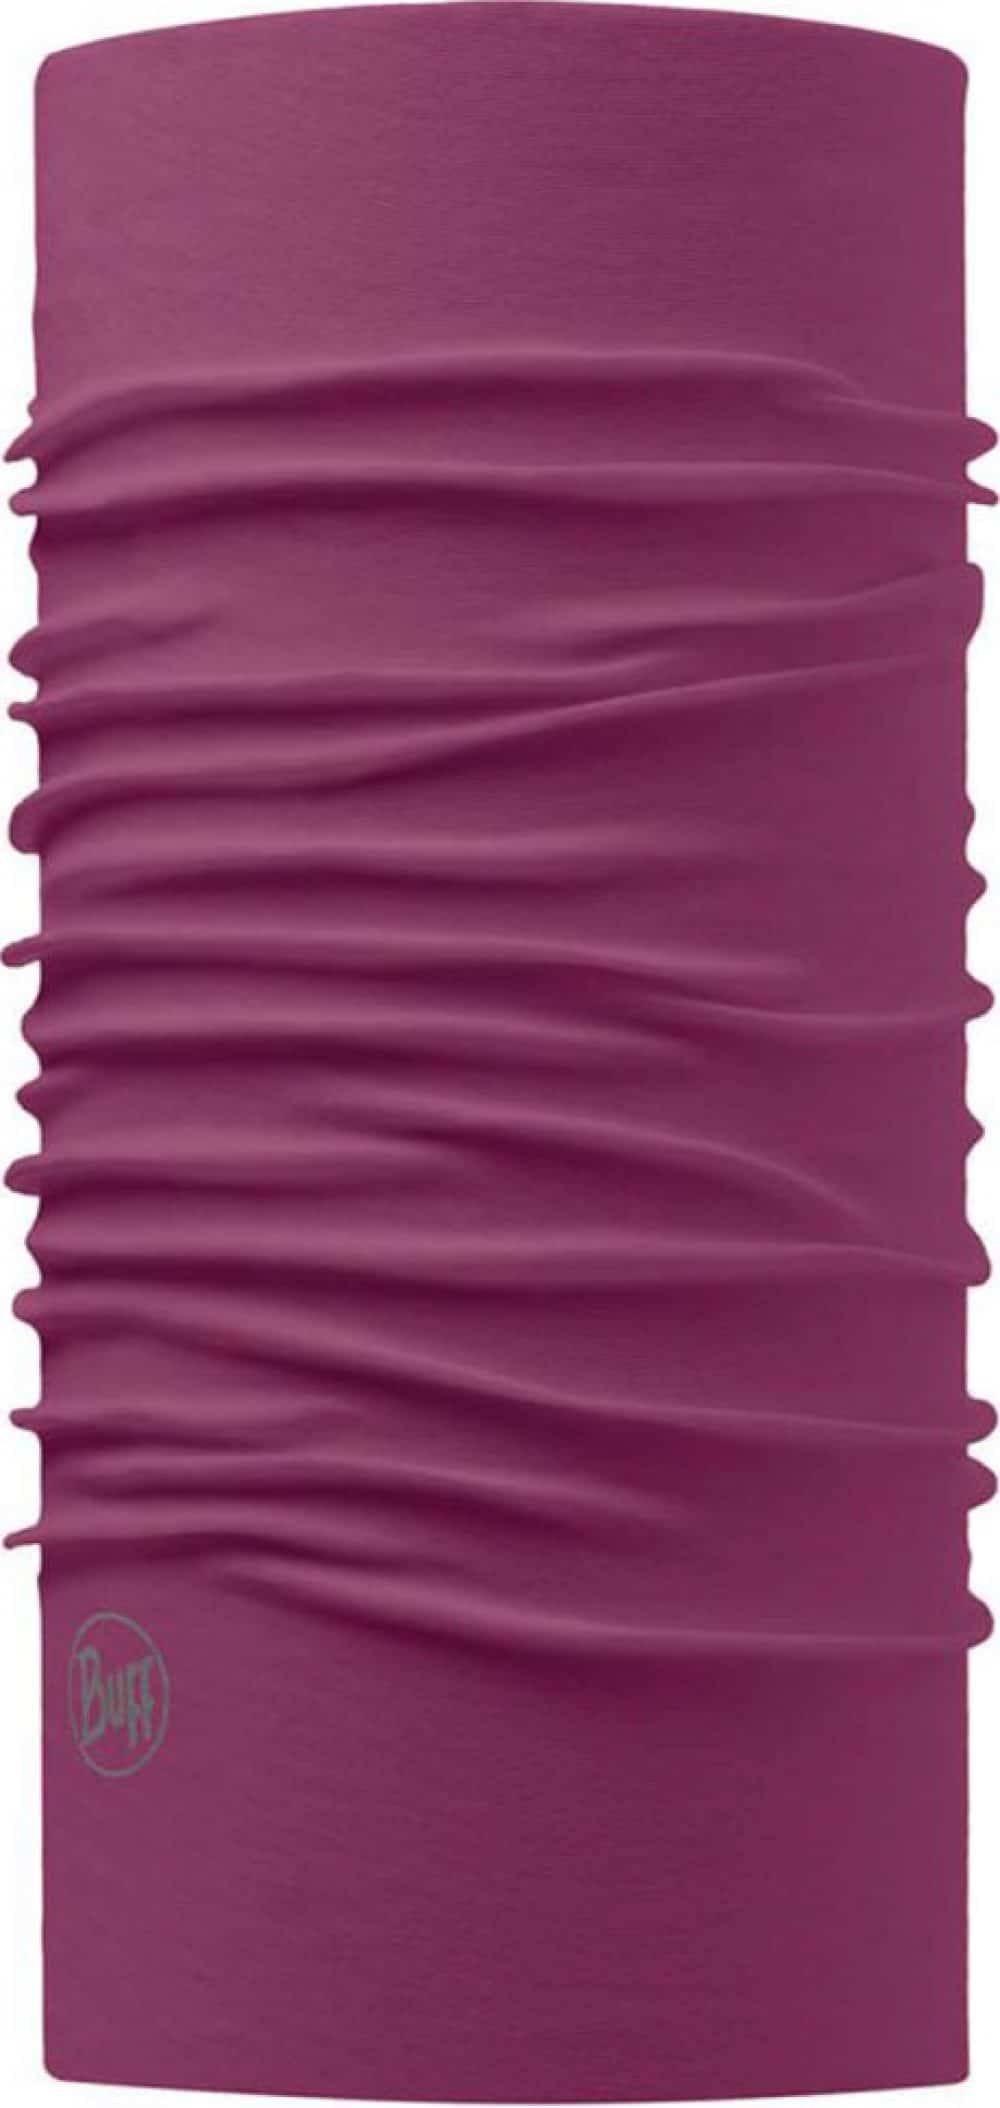 "A studio photo of the Original Buff® design ""Purple Amaranth"". Source: buff.eu"